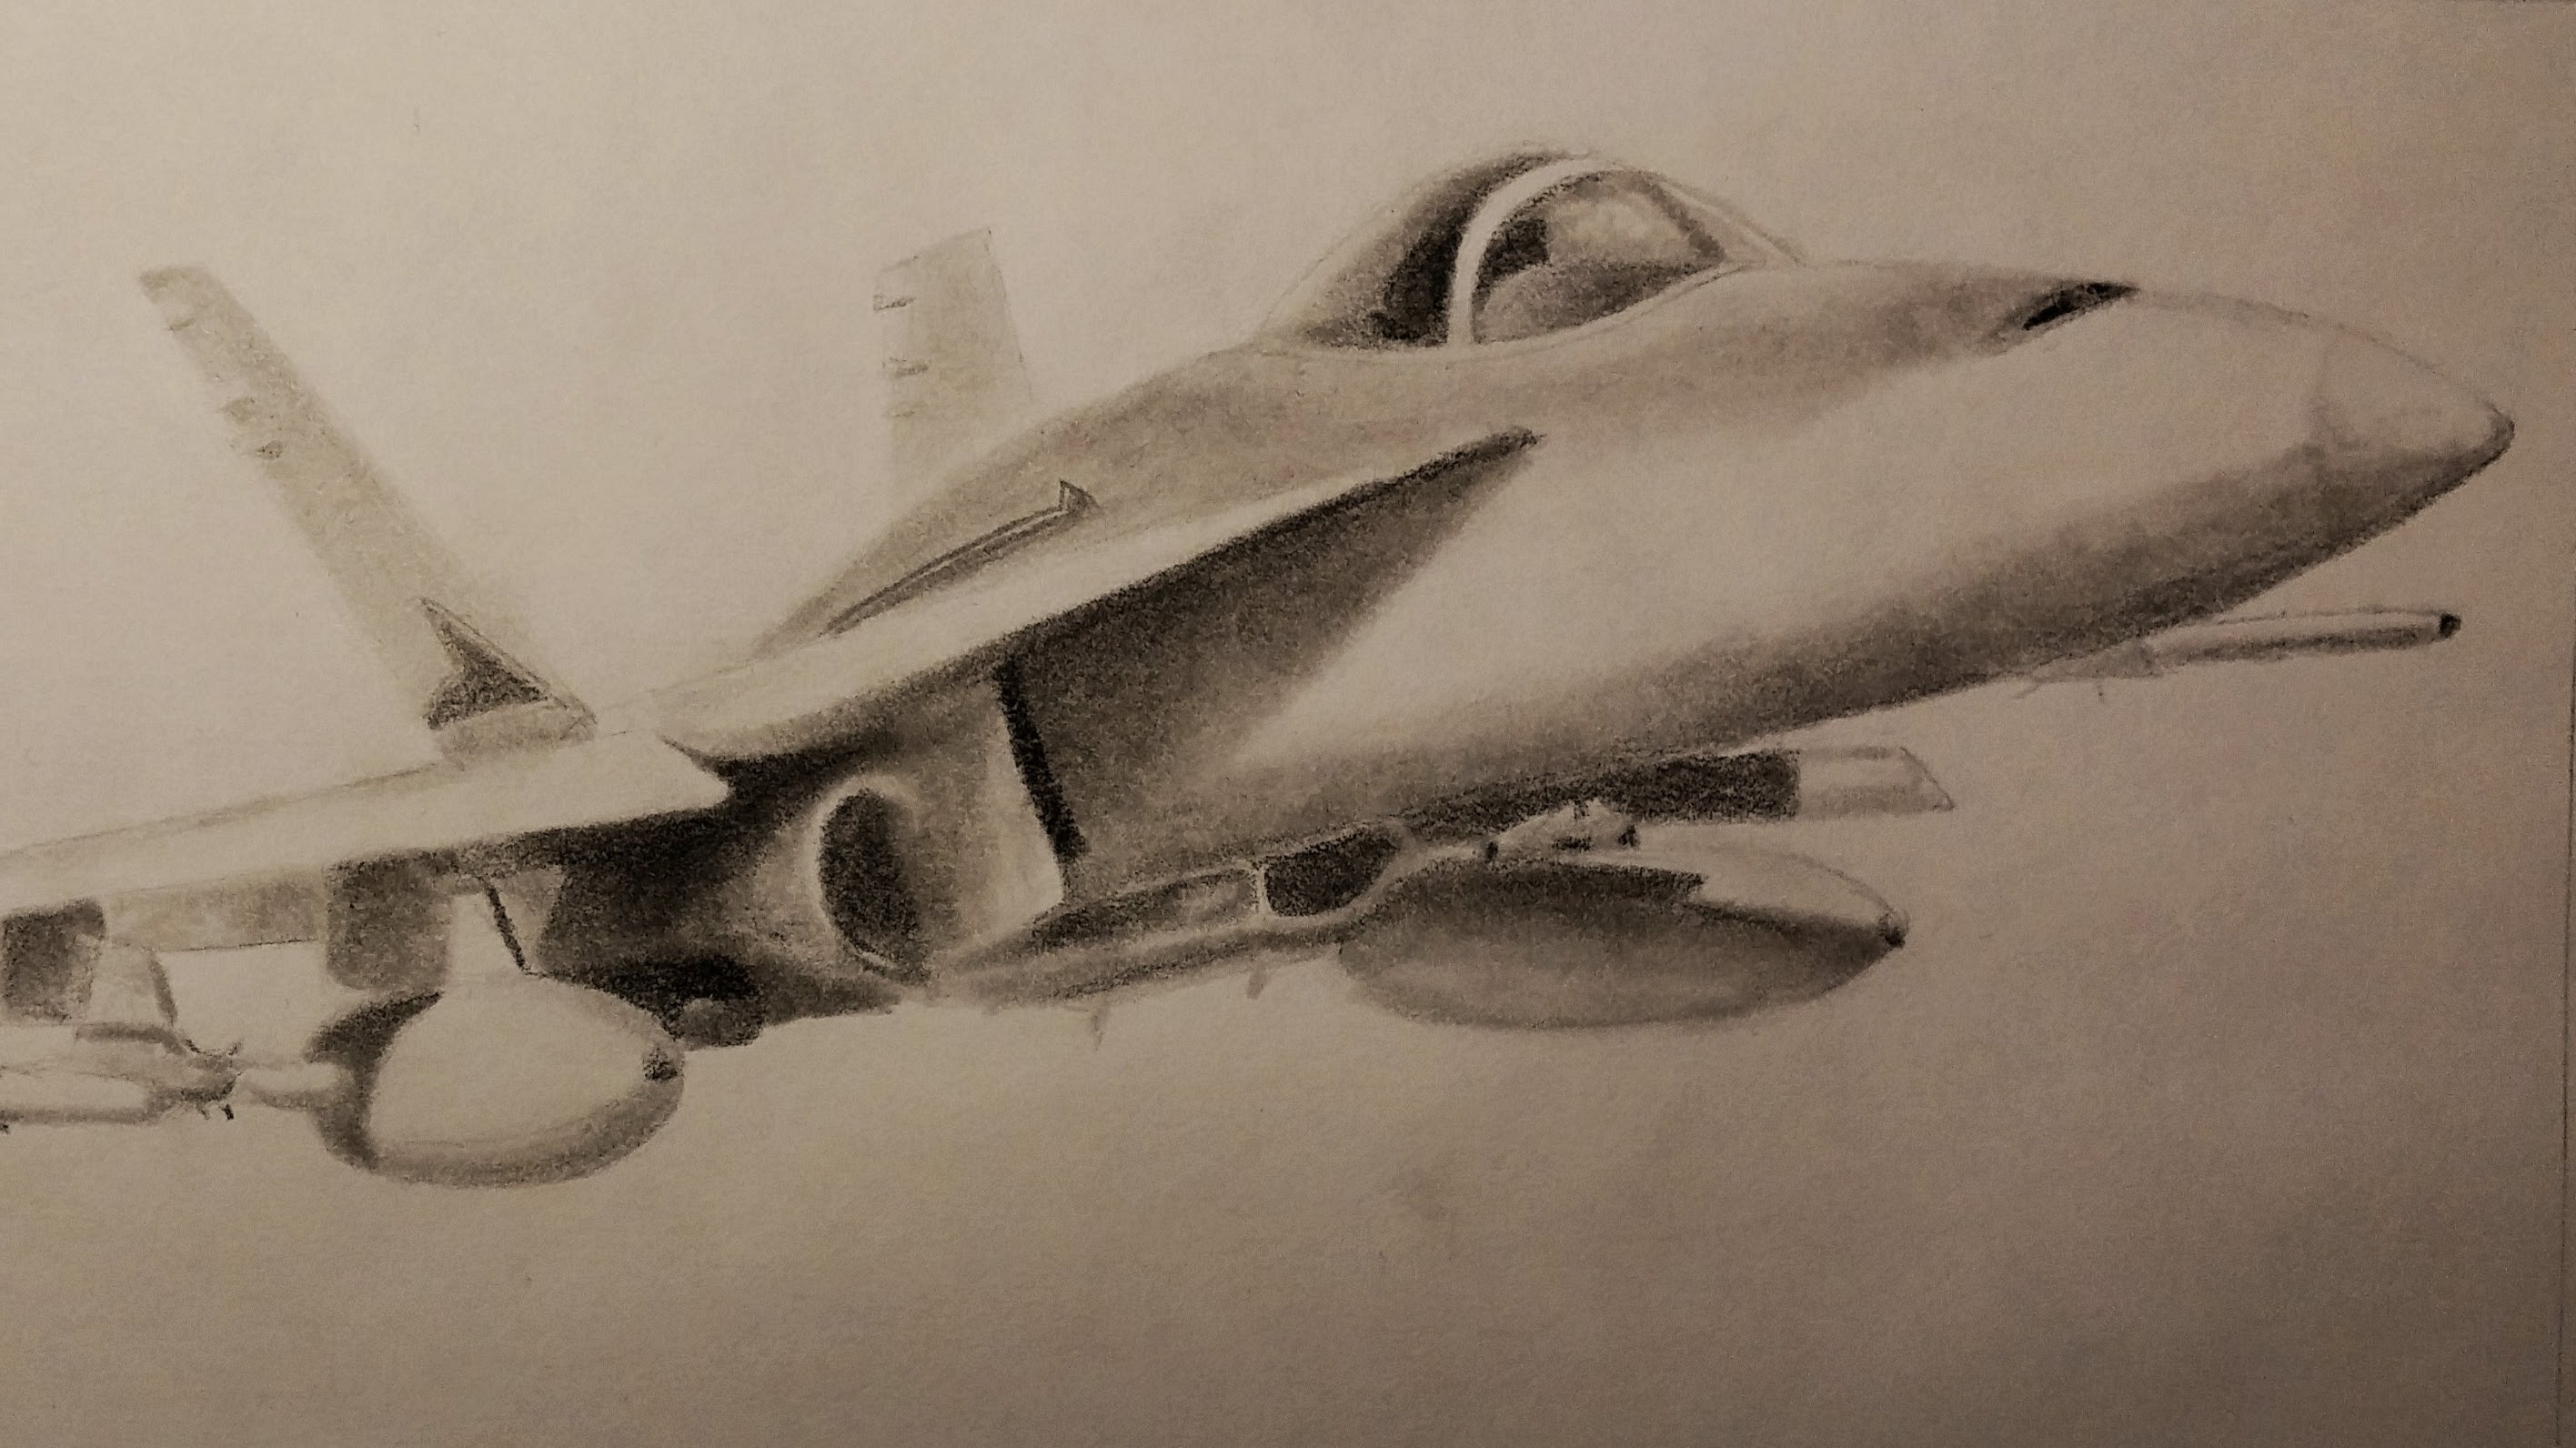 2832x1592 Pencils Sketch Of 3d Airplane Pencils Sketch Of 3d Airplane